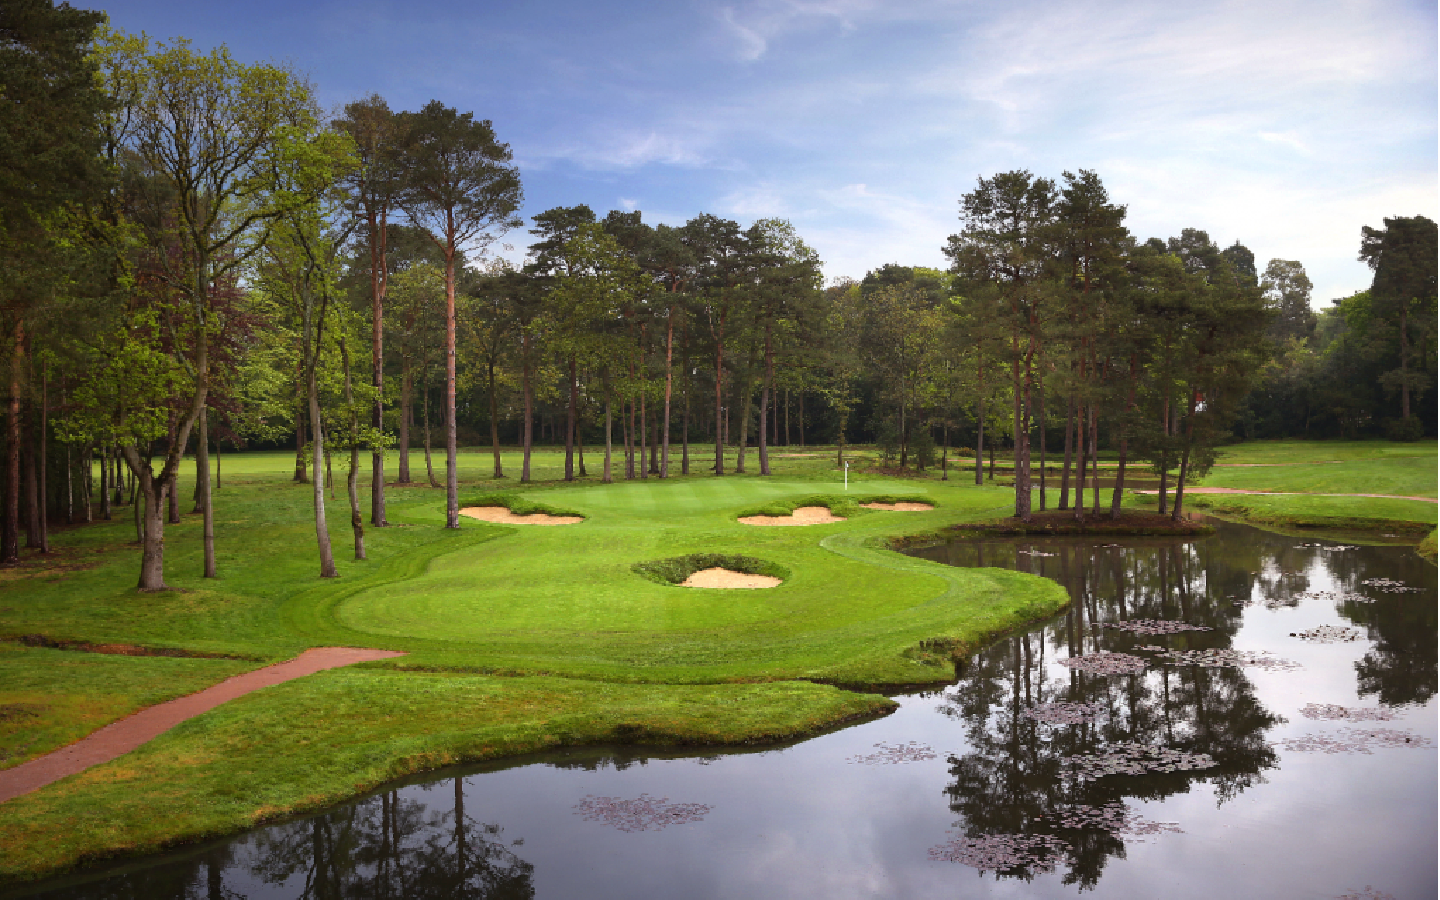 Woking Golf Club - Commonwealth Golfers Venue